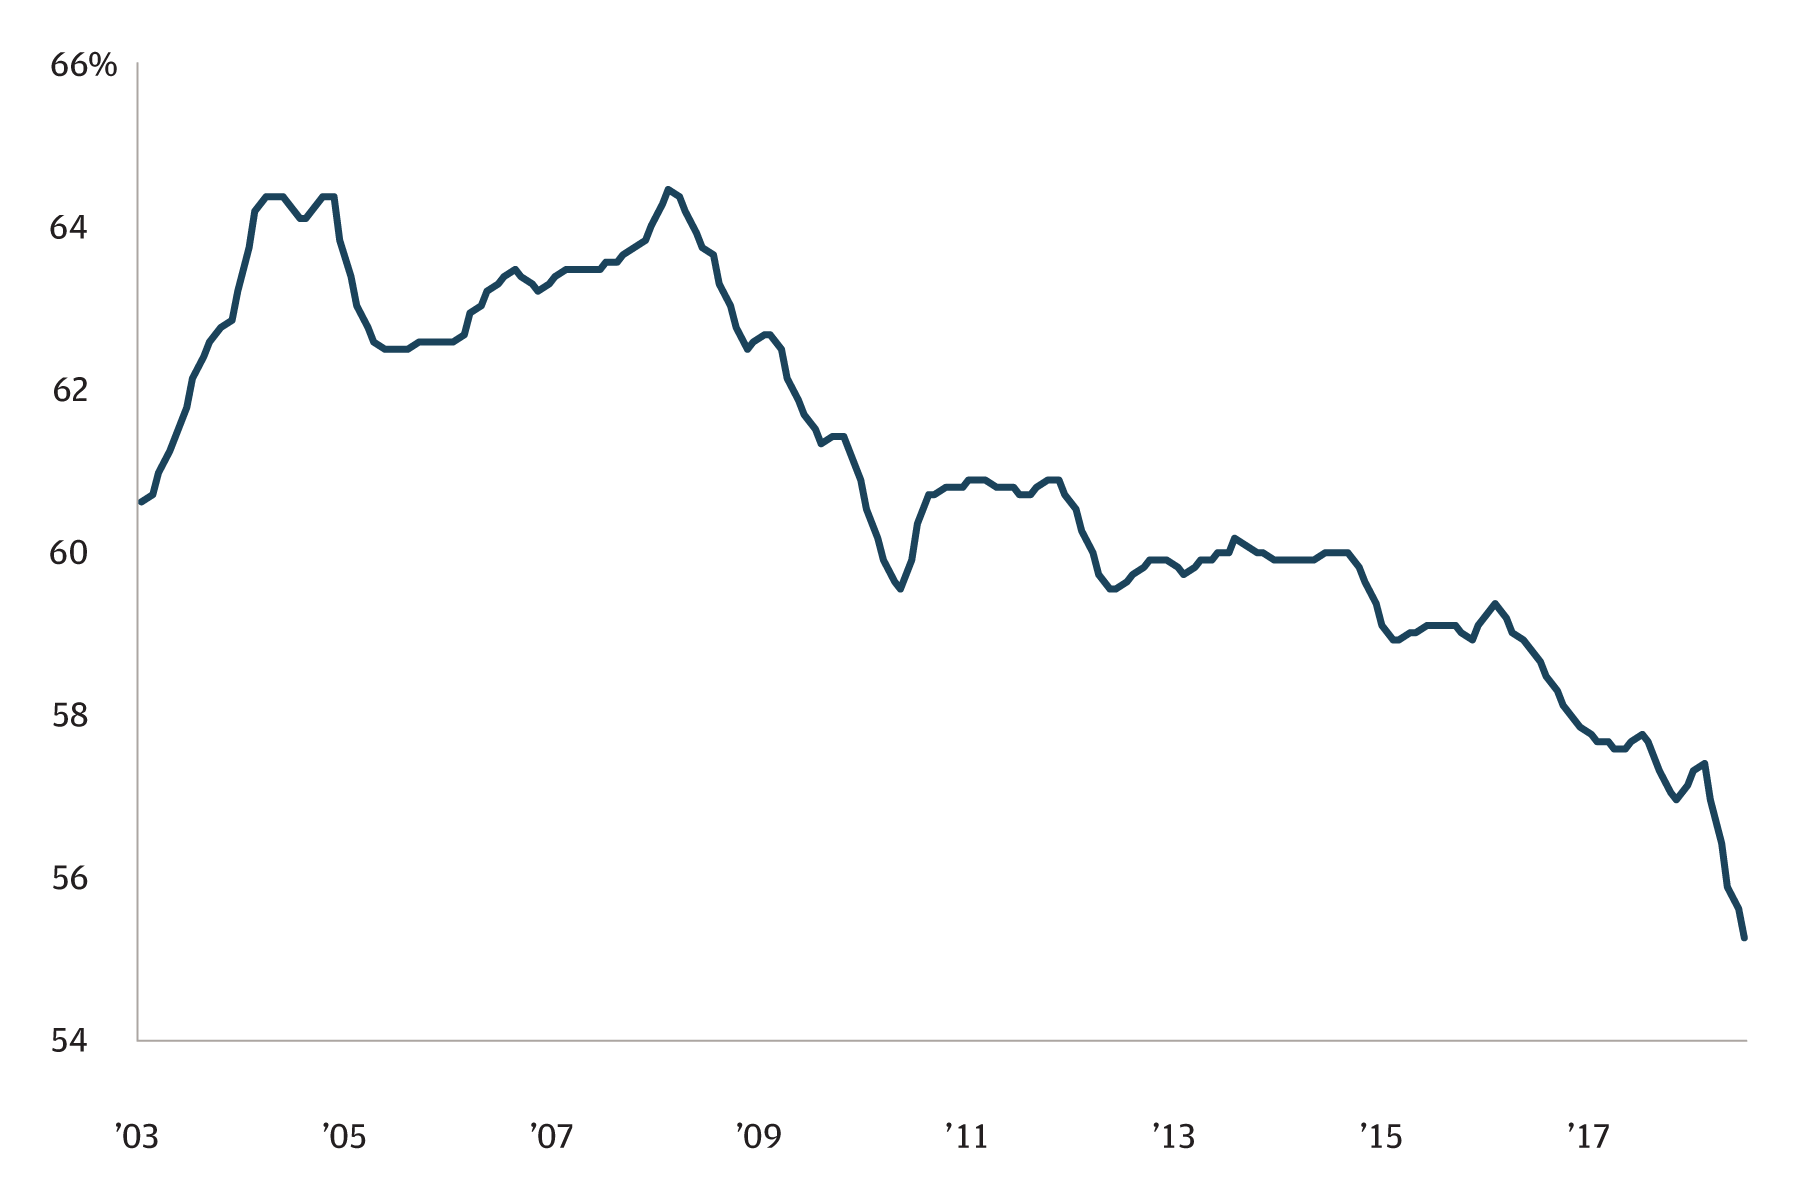 Line chart of USD share of central bank reserves (in percentage) from 2003 through 2018. The line has steadily decreased during this time period and is now at its lowest level.